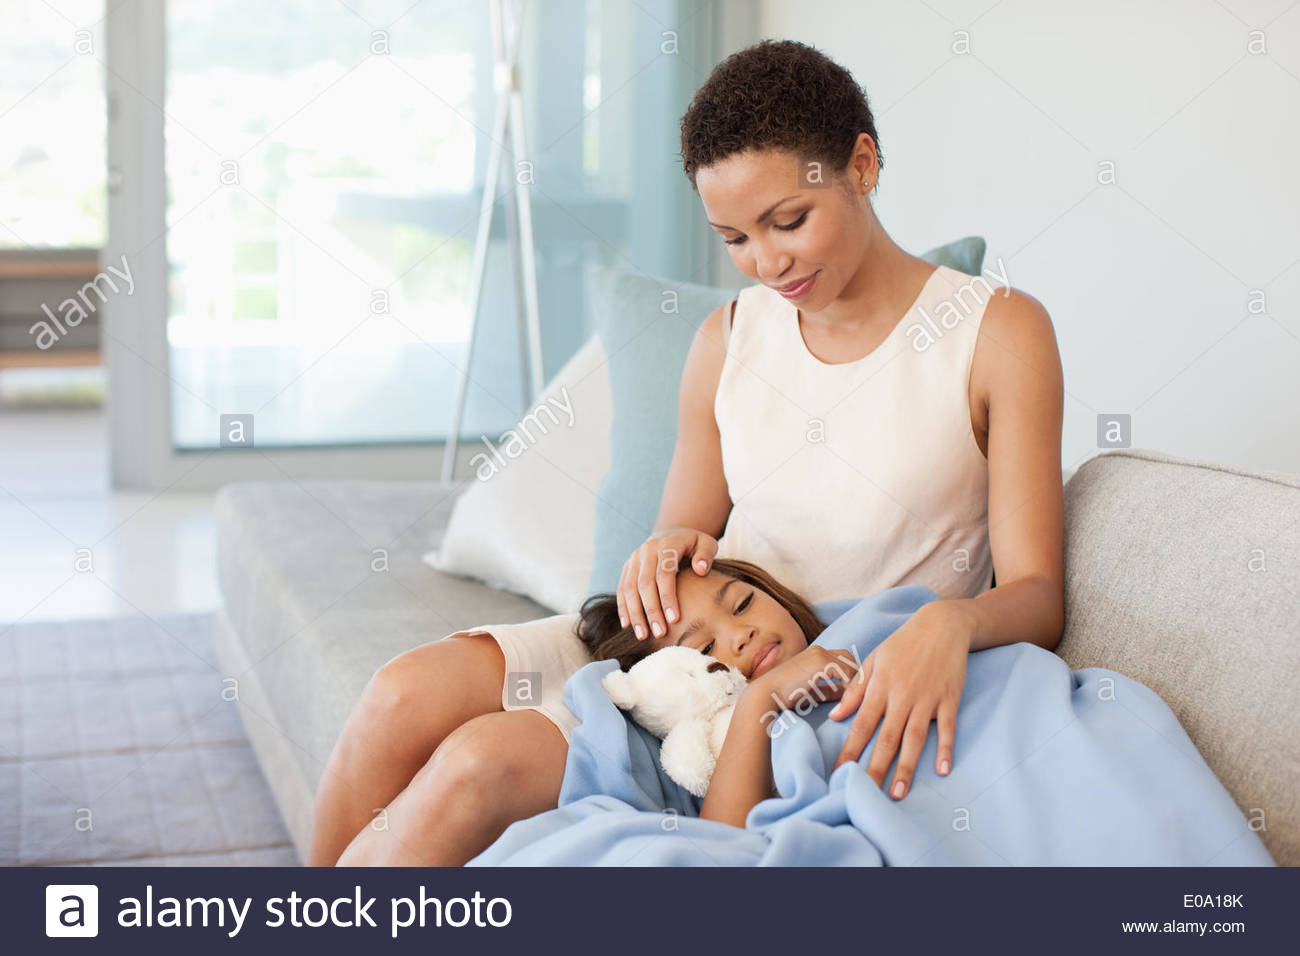 Woman caring for sick daughter - Stock Image